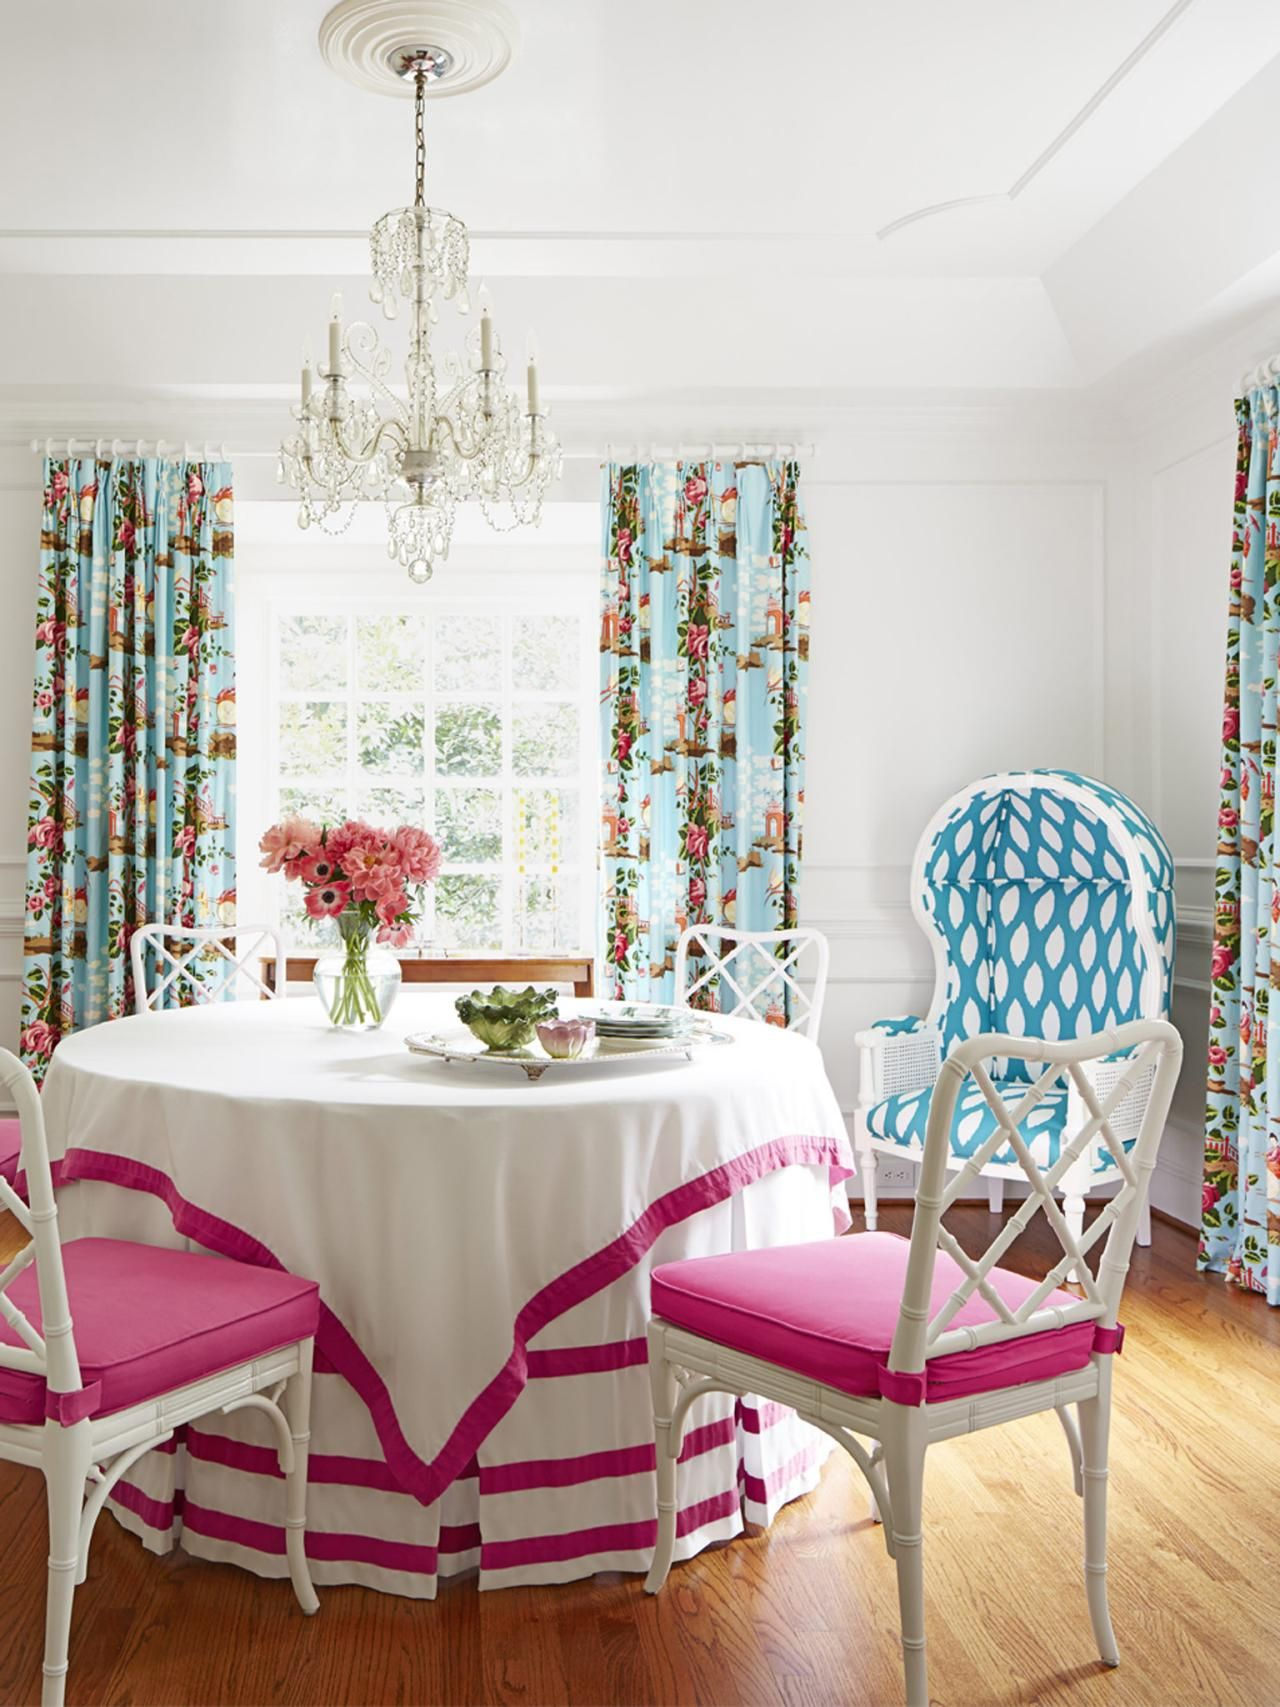 Summer Decorating Ideas - Preppy Interiors   Interior Design Styles and Color Schemes for Home Decorating   HGTV